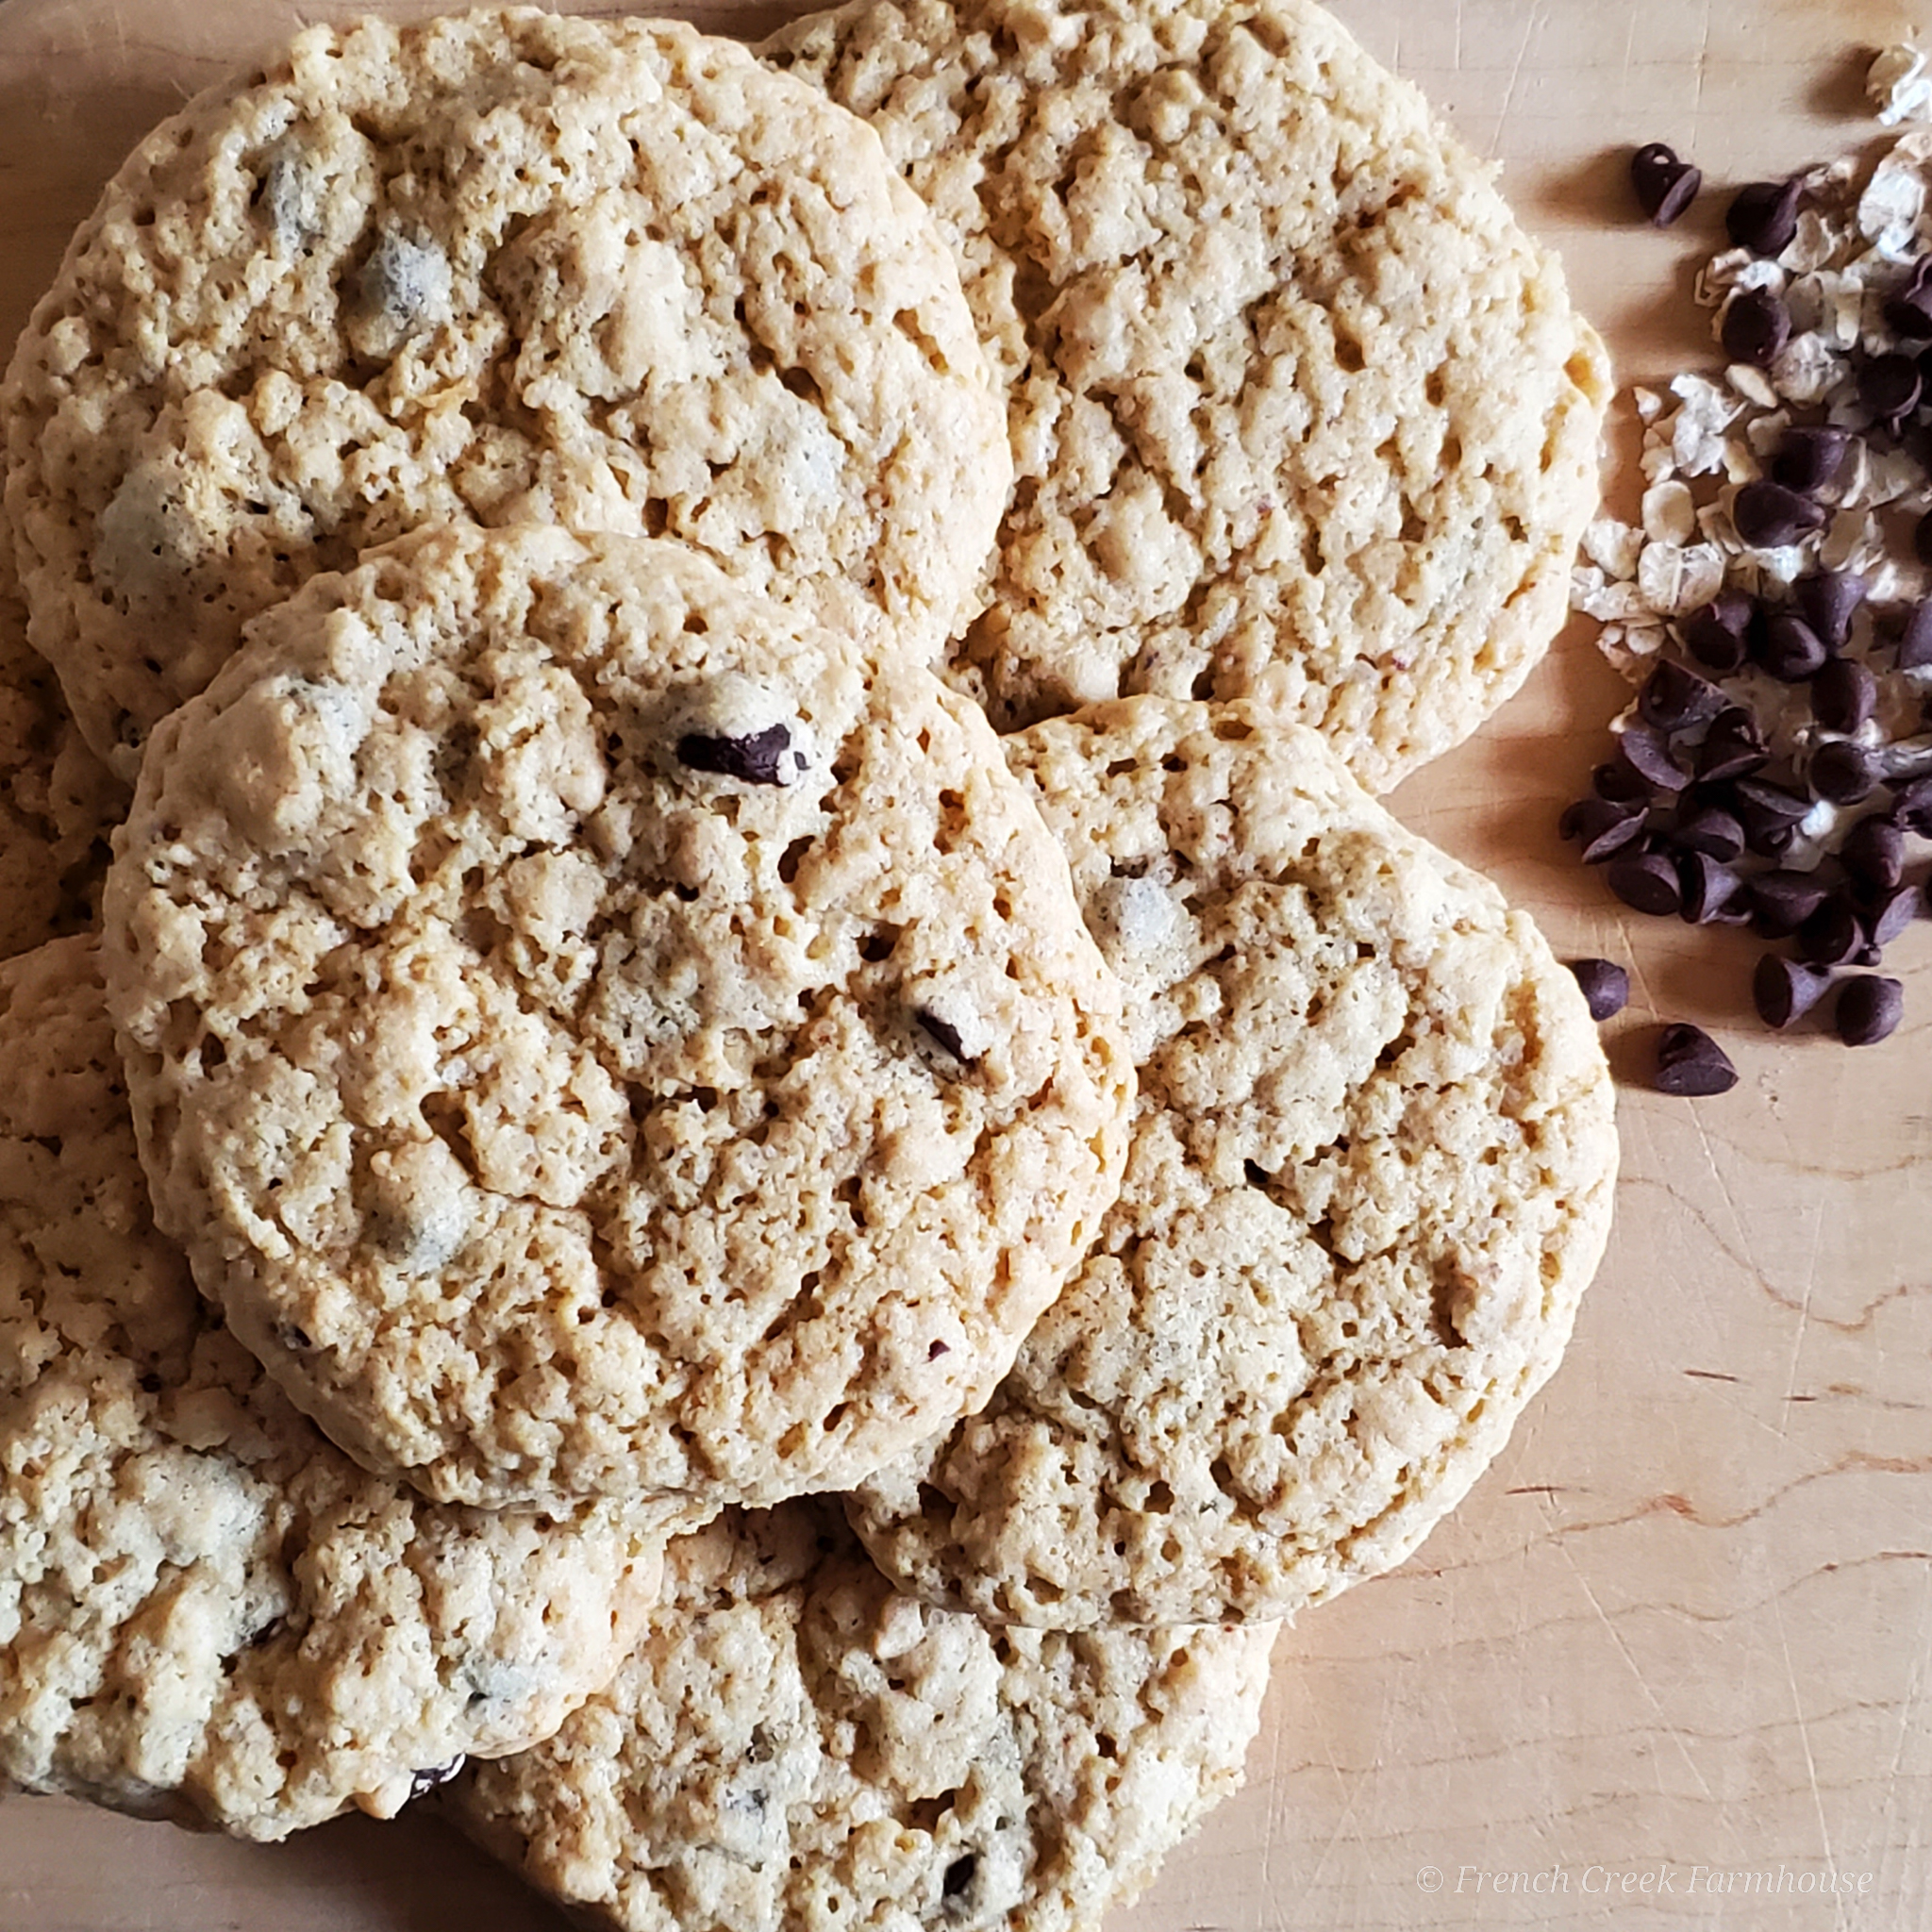 Stack of Cookies on Rustic Wooden Board